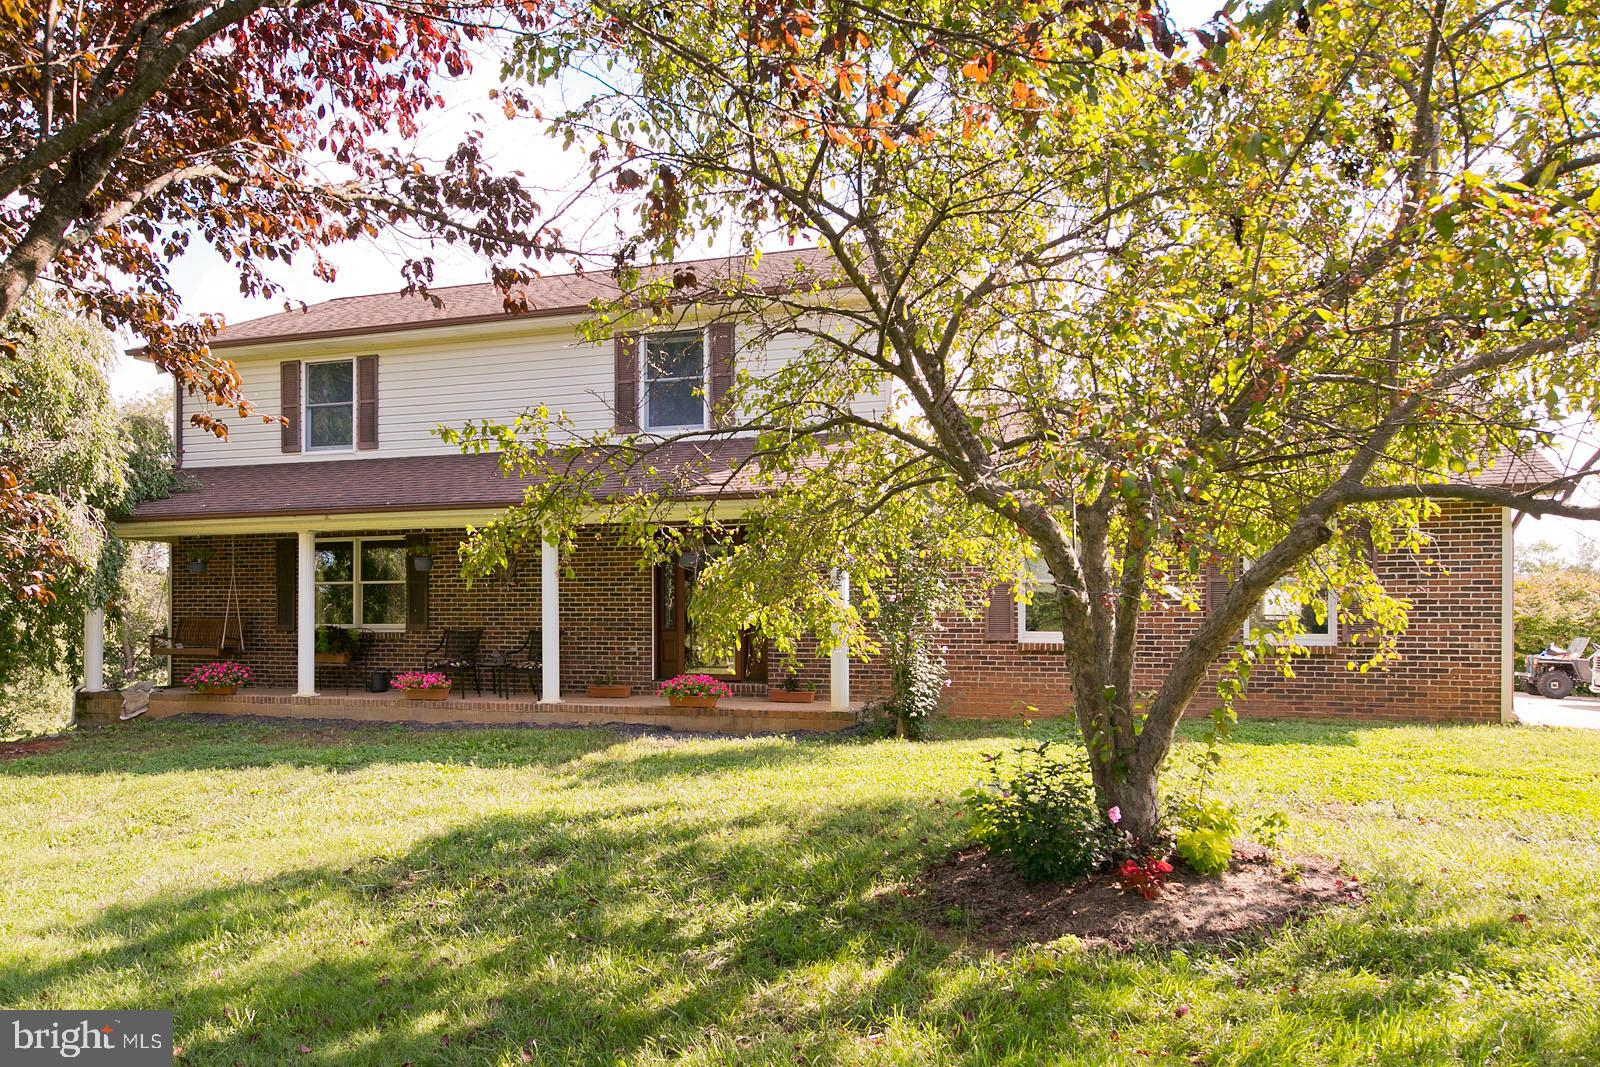 This lovely 3-bedroom, 2.5 bath Colonial is situated on 5+ acres in the country, but convenient to Route 55, I-81/I-66.  The front, back and side yards provide ample room for any, and all, outdoor gatherings.   No HOA. The owners have made significant improvements and upgrades since 2012.  There is a detached 26' x 29' garage, and a huge 30' x 60' garage/workshop with electricity and a wood burning heat source.  If you're looking for a place to store your boat, jet skis, or you're a car enthusiast who likes to work on cars, there's room here!  Sit in the gazebo or on the deck with your morning coffee and watch the sunrise.  You may even see some deer coming out of the lush tree line that borders the property.